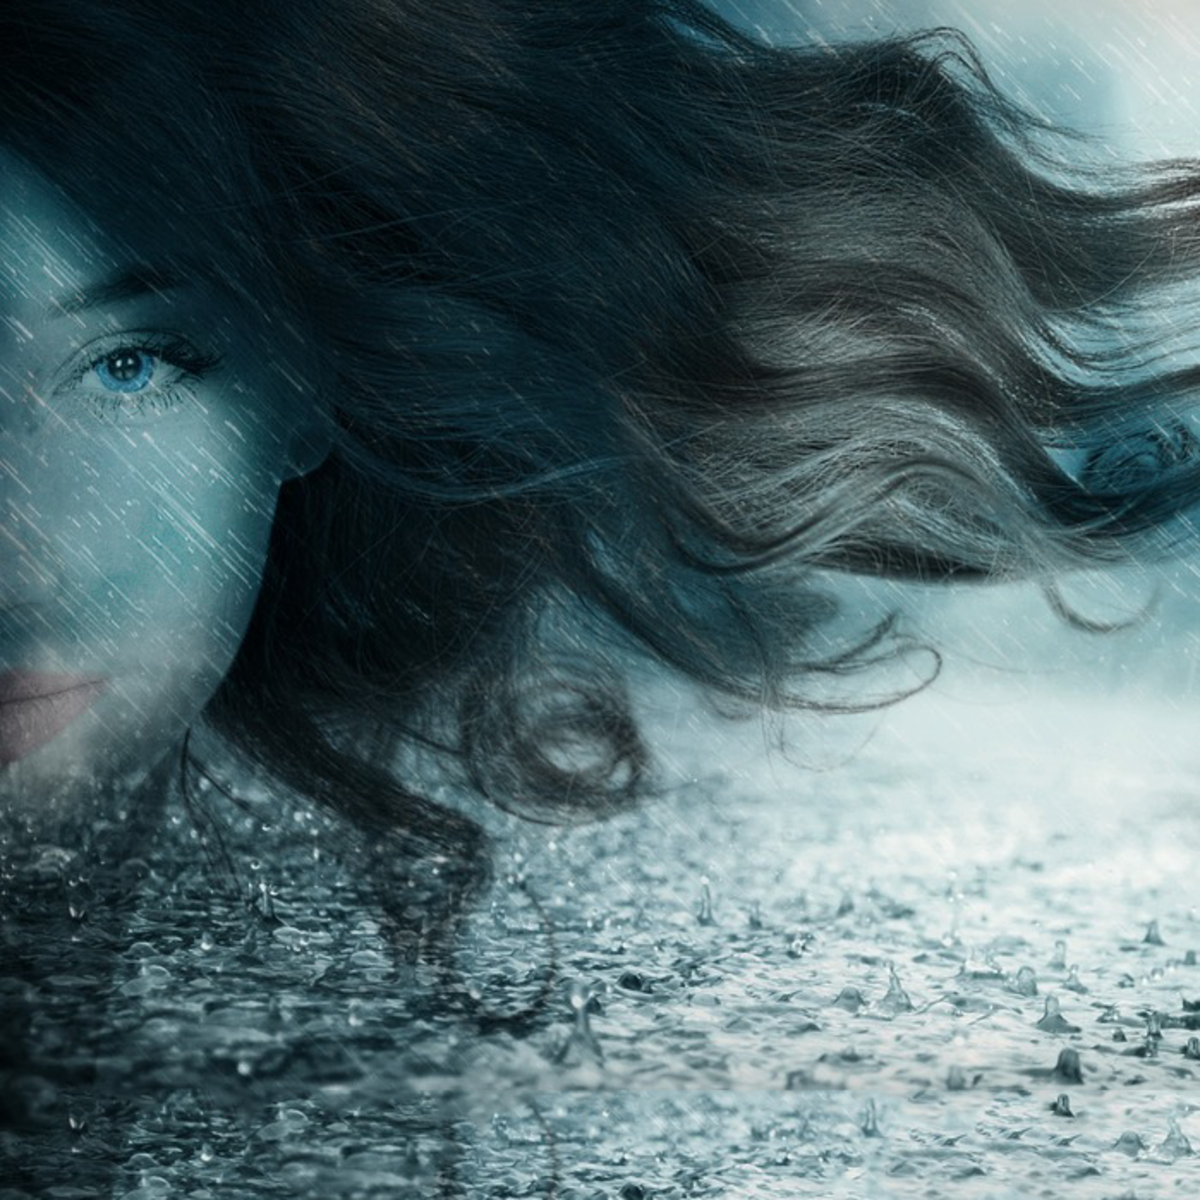 The Selkie Wife: A Short Story Inspired by Celtic Folklore - Chapter 1